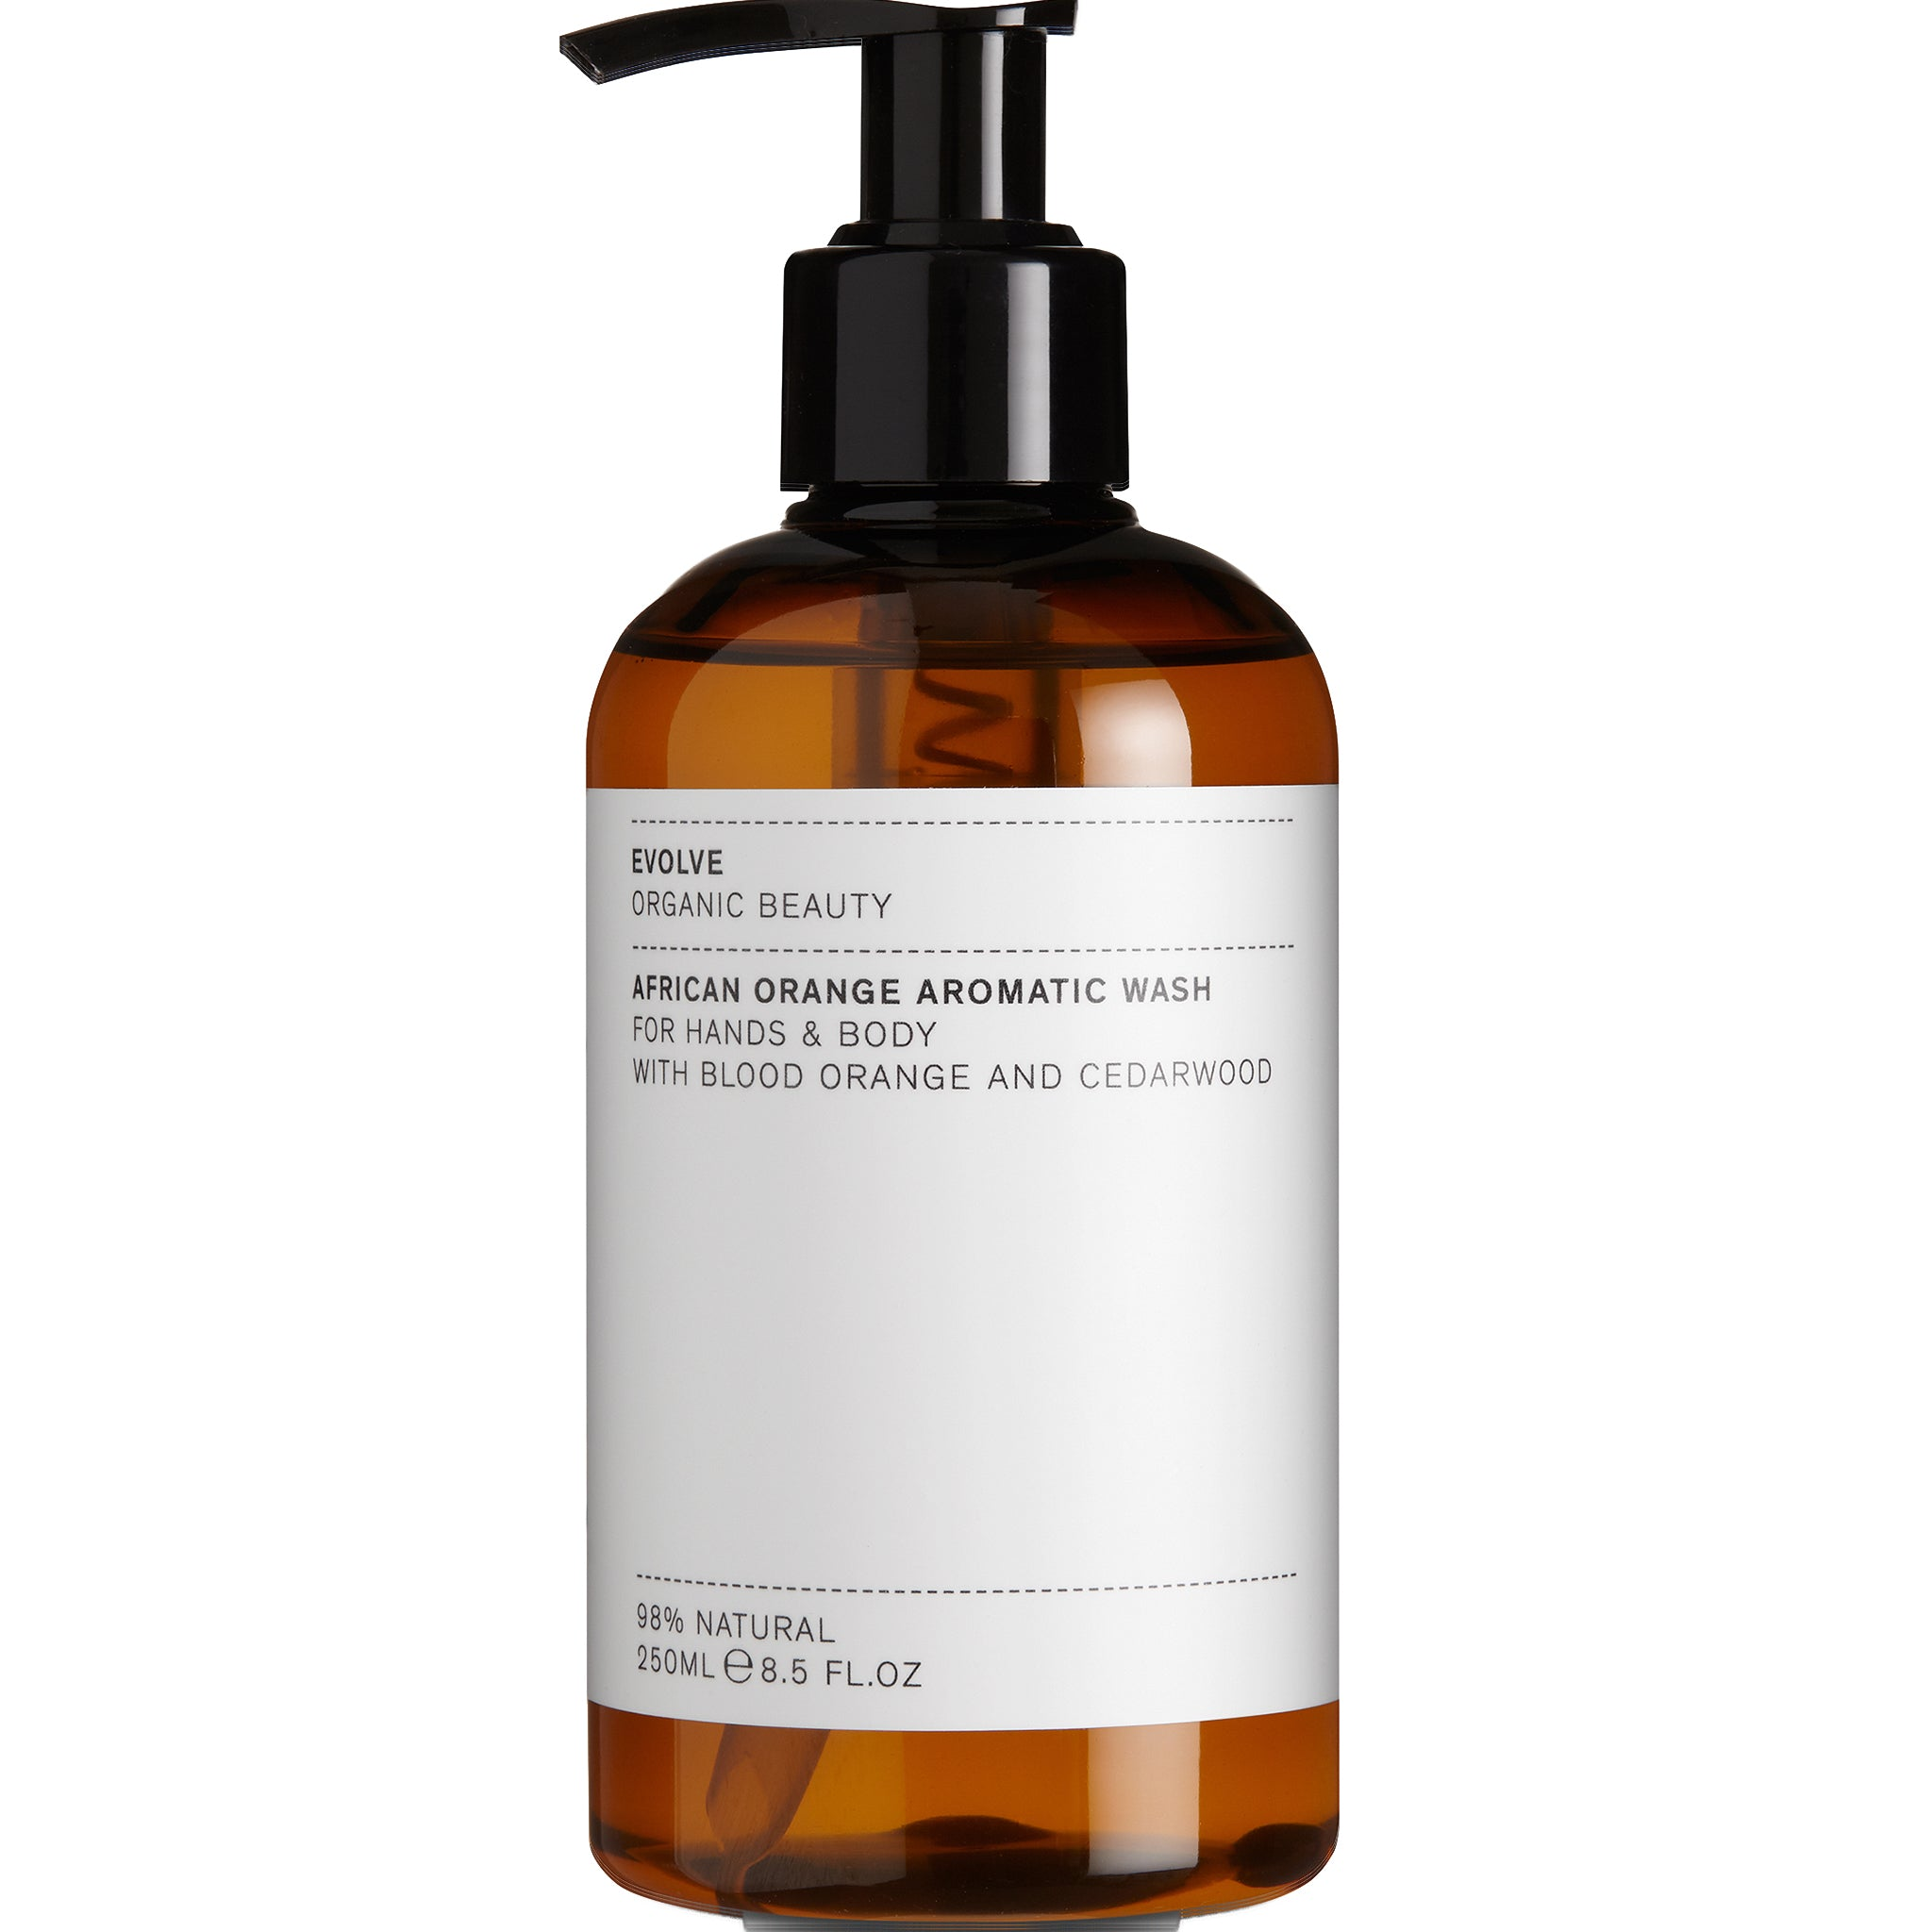 African Orange Aromatic Hand & Body Wash